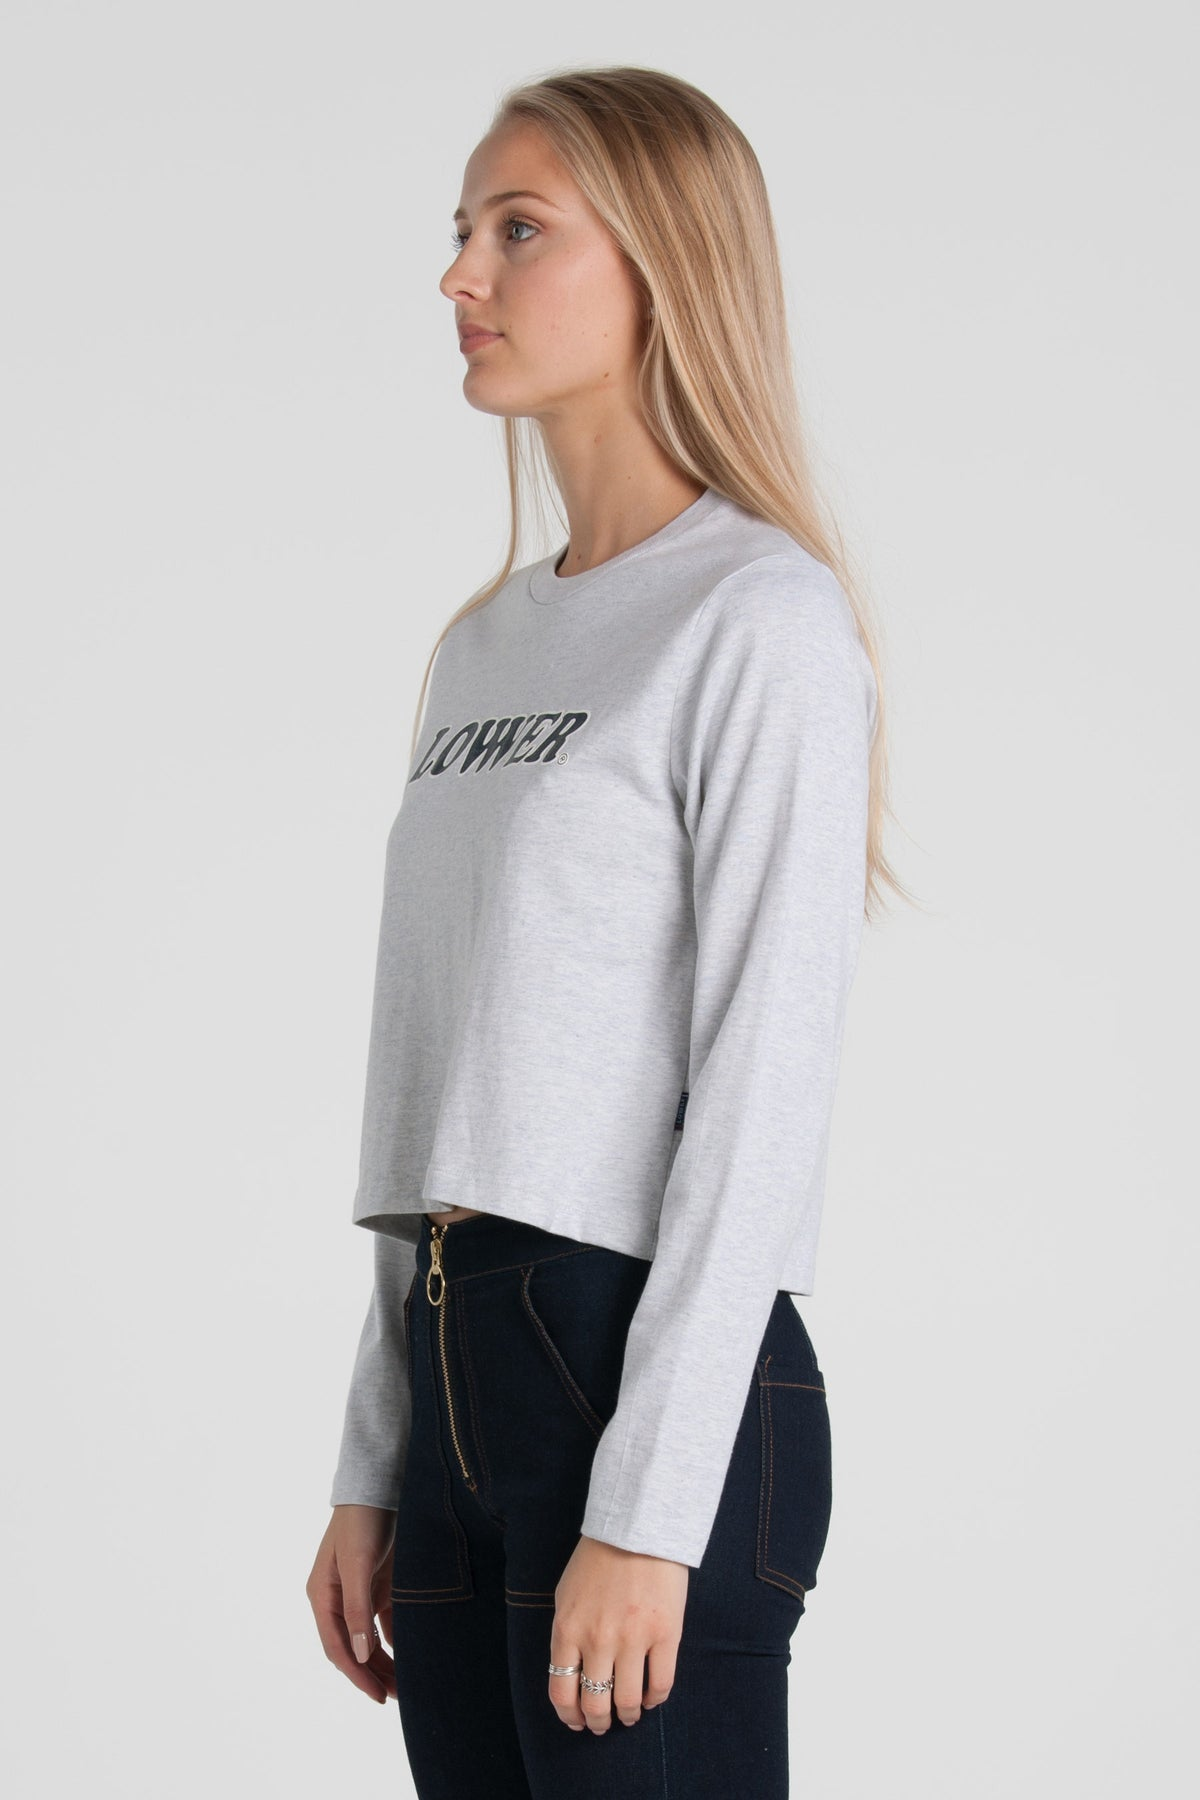 Cherry Ripe Cropped Long Sleeve - Silver Marle